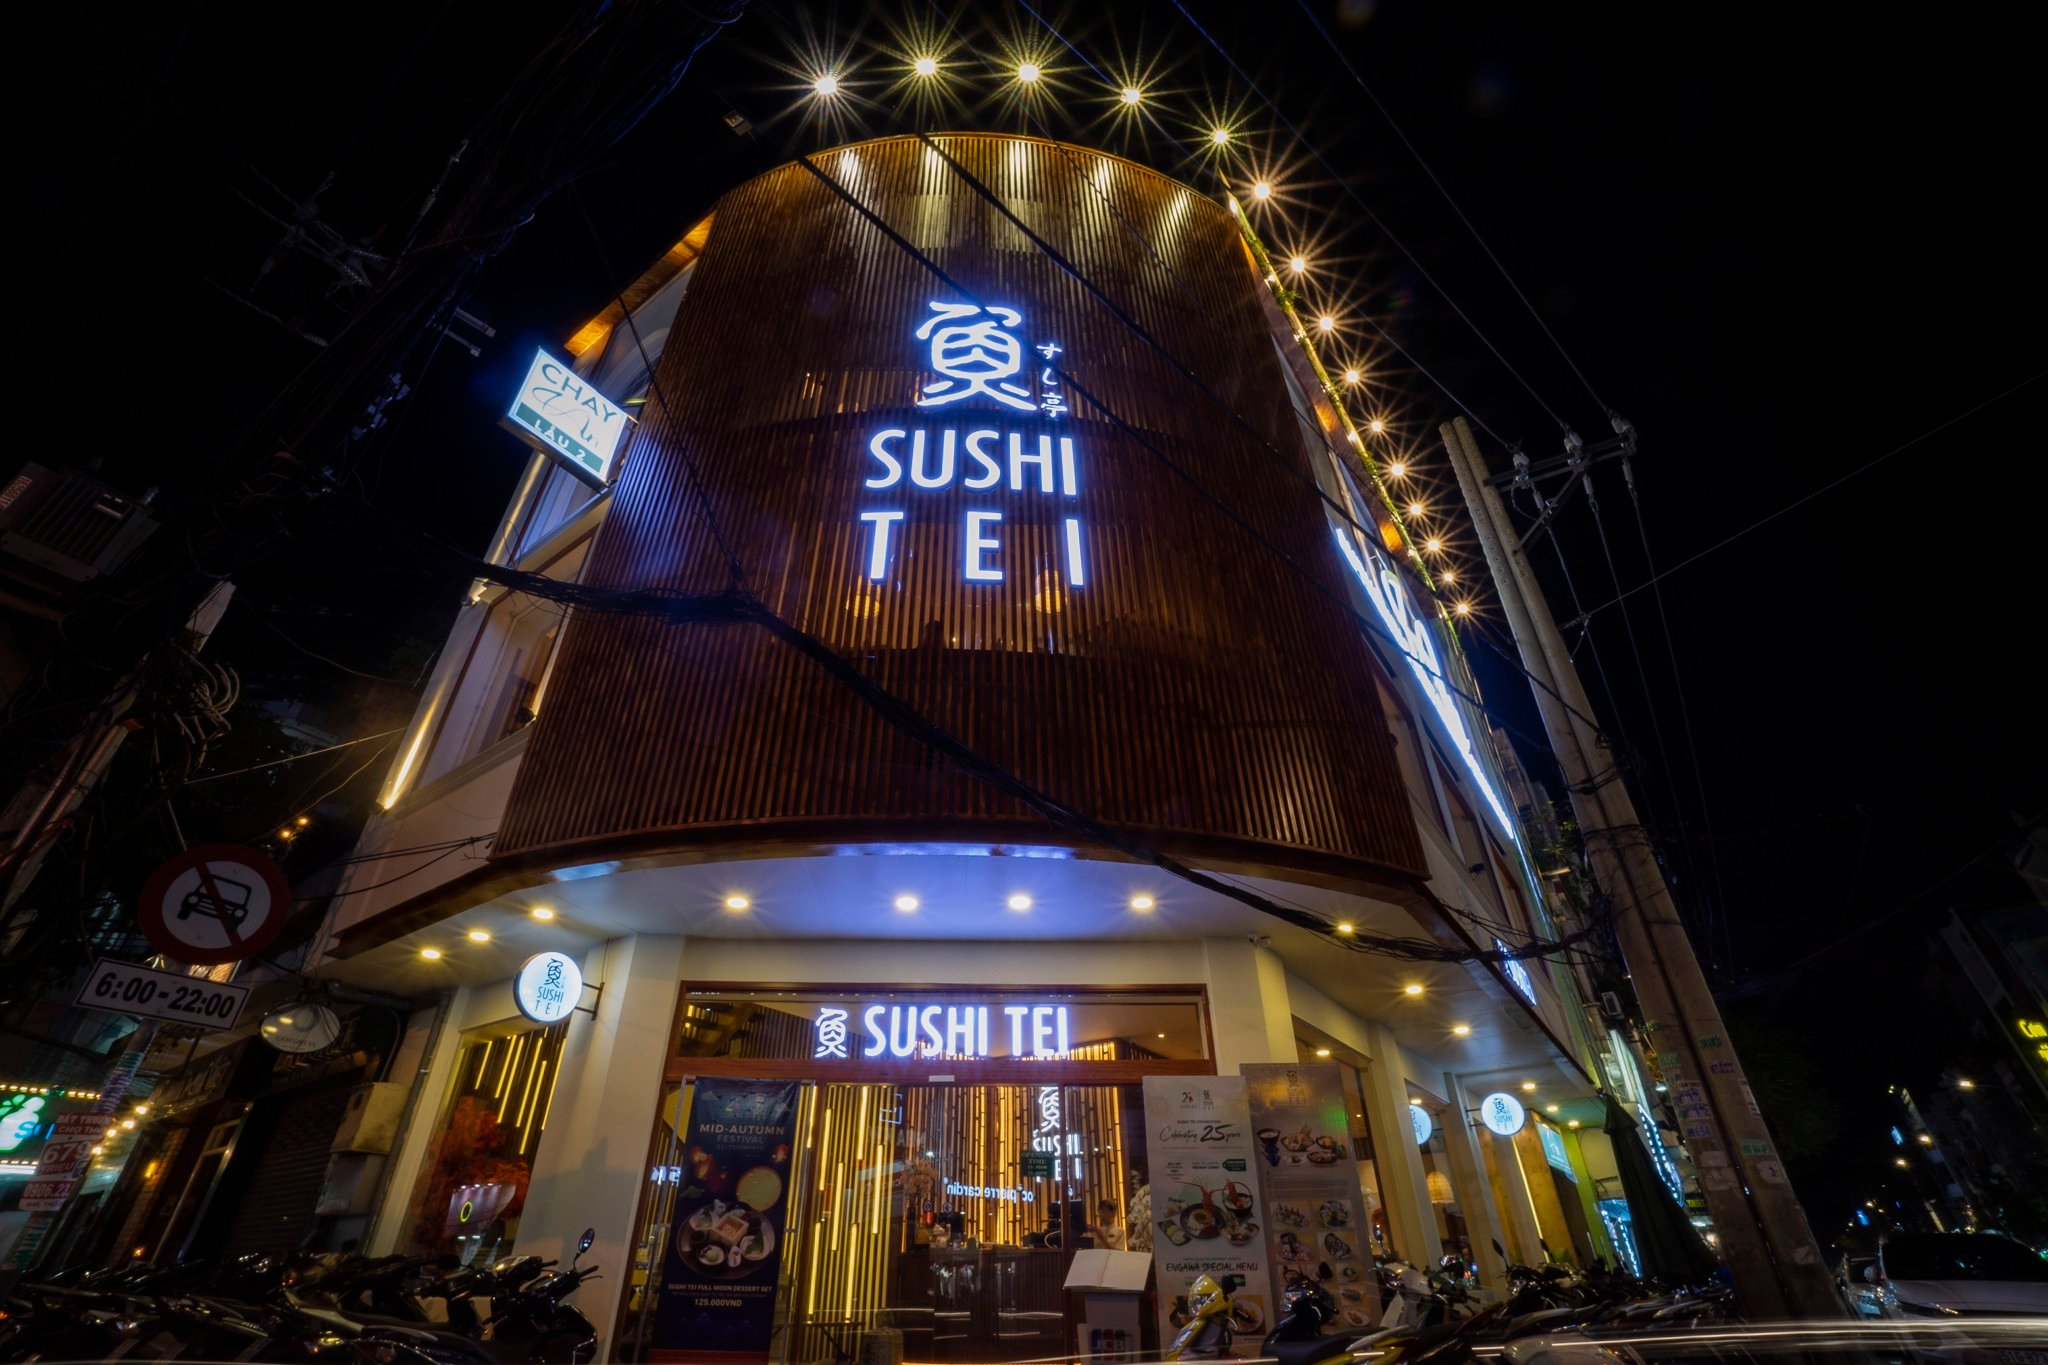 SUSHI TEI GRAND MENU UPDATED